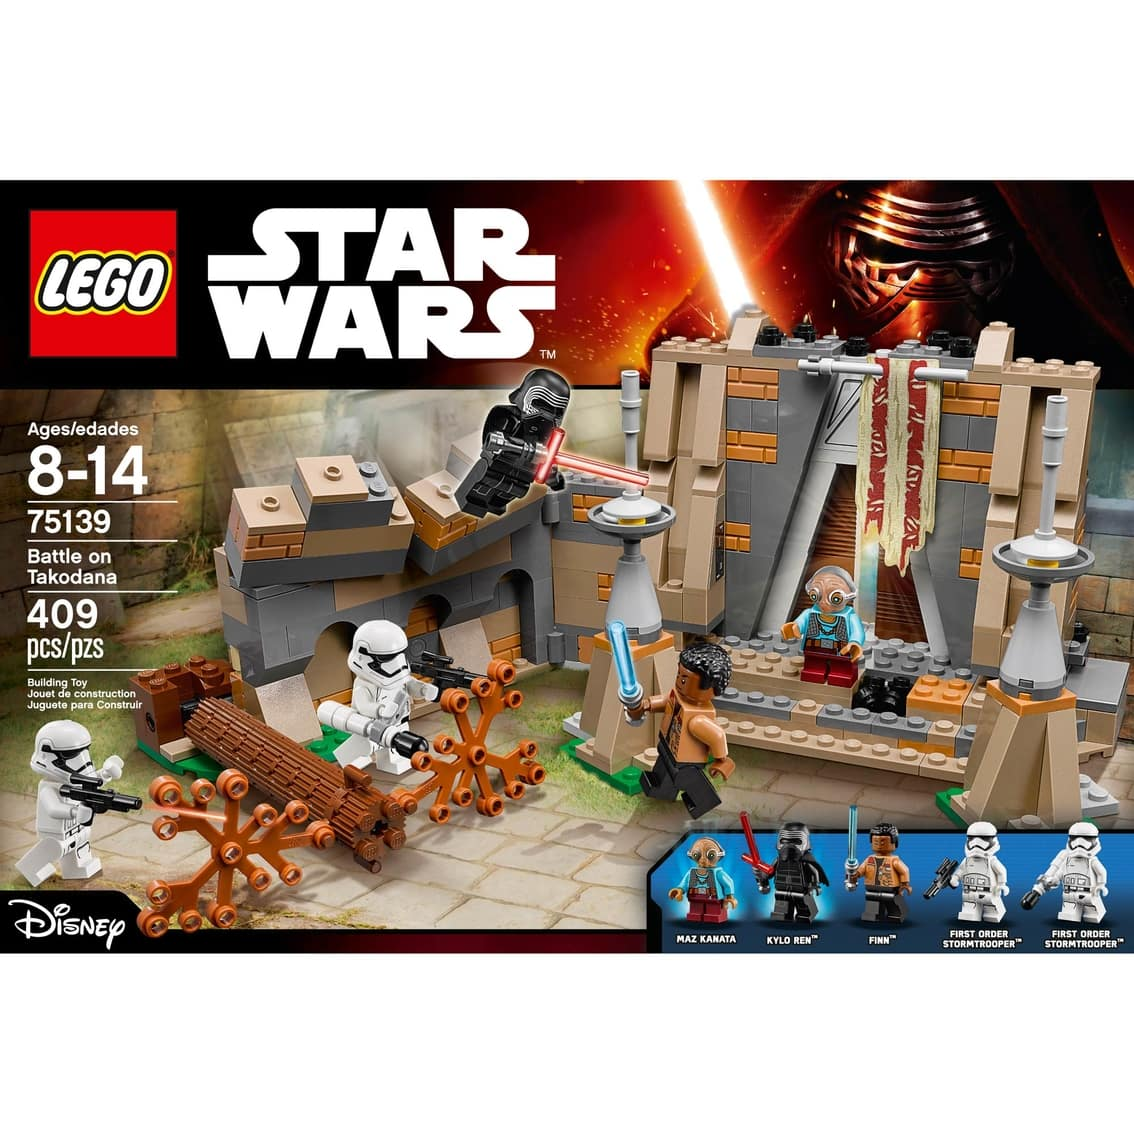 STAR WARS LEGO 75139 – 409 pieces for $14.95 on Military Exchange (75148 - $23.95) Plus $4.95 shipping $19.9